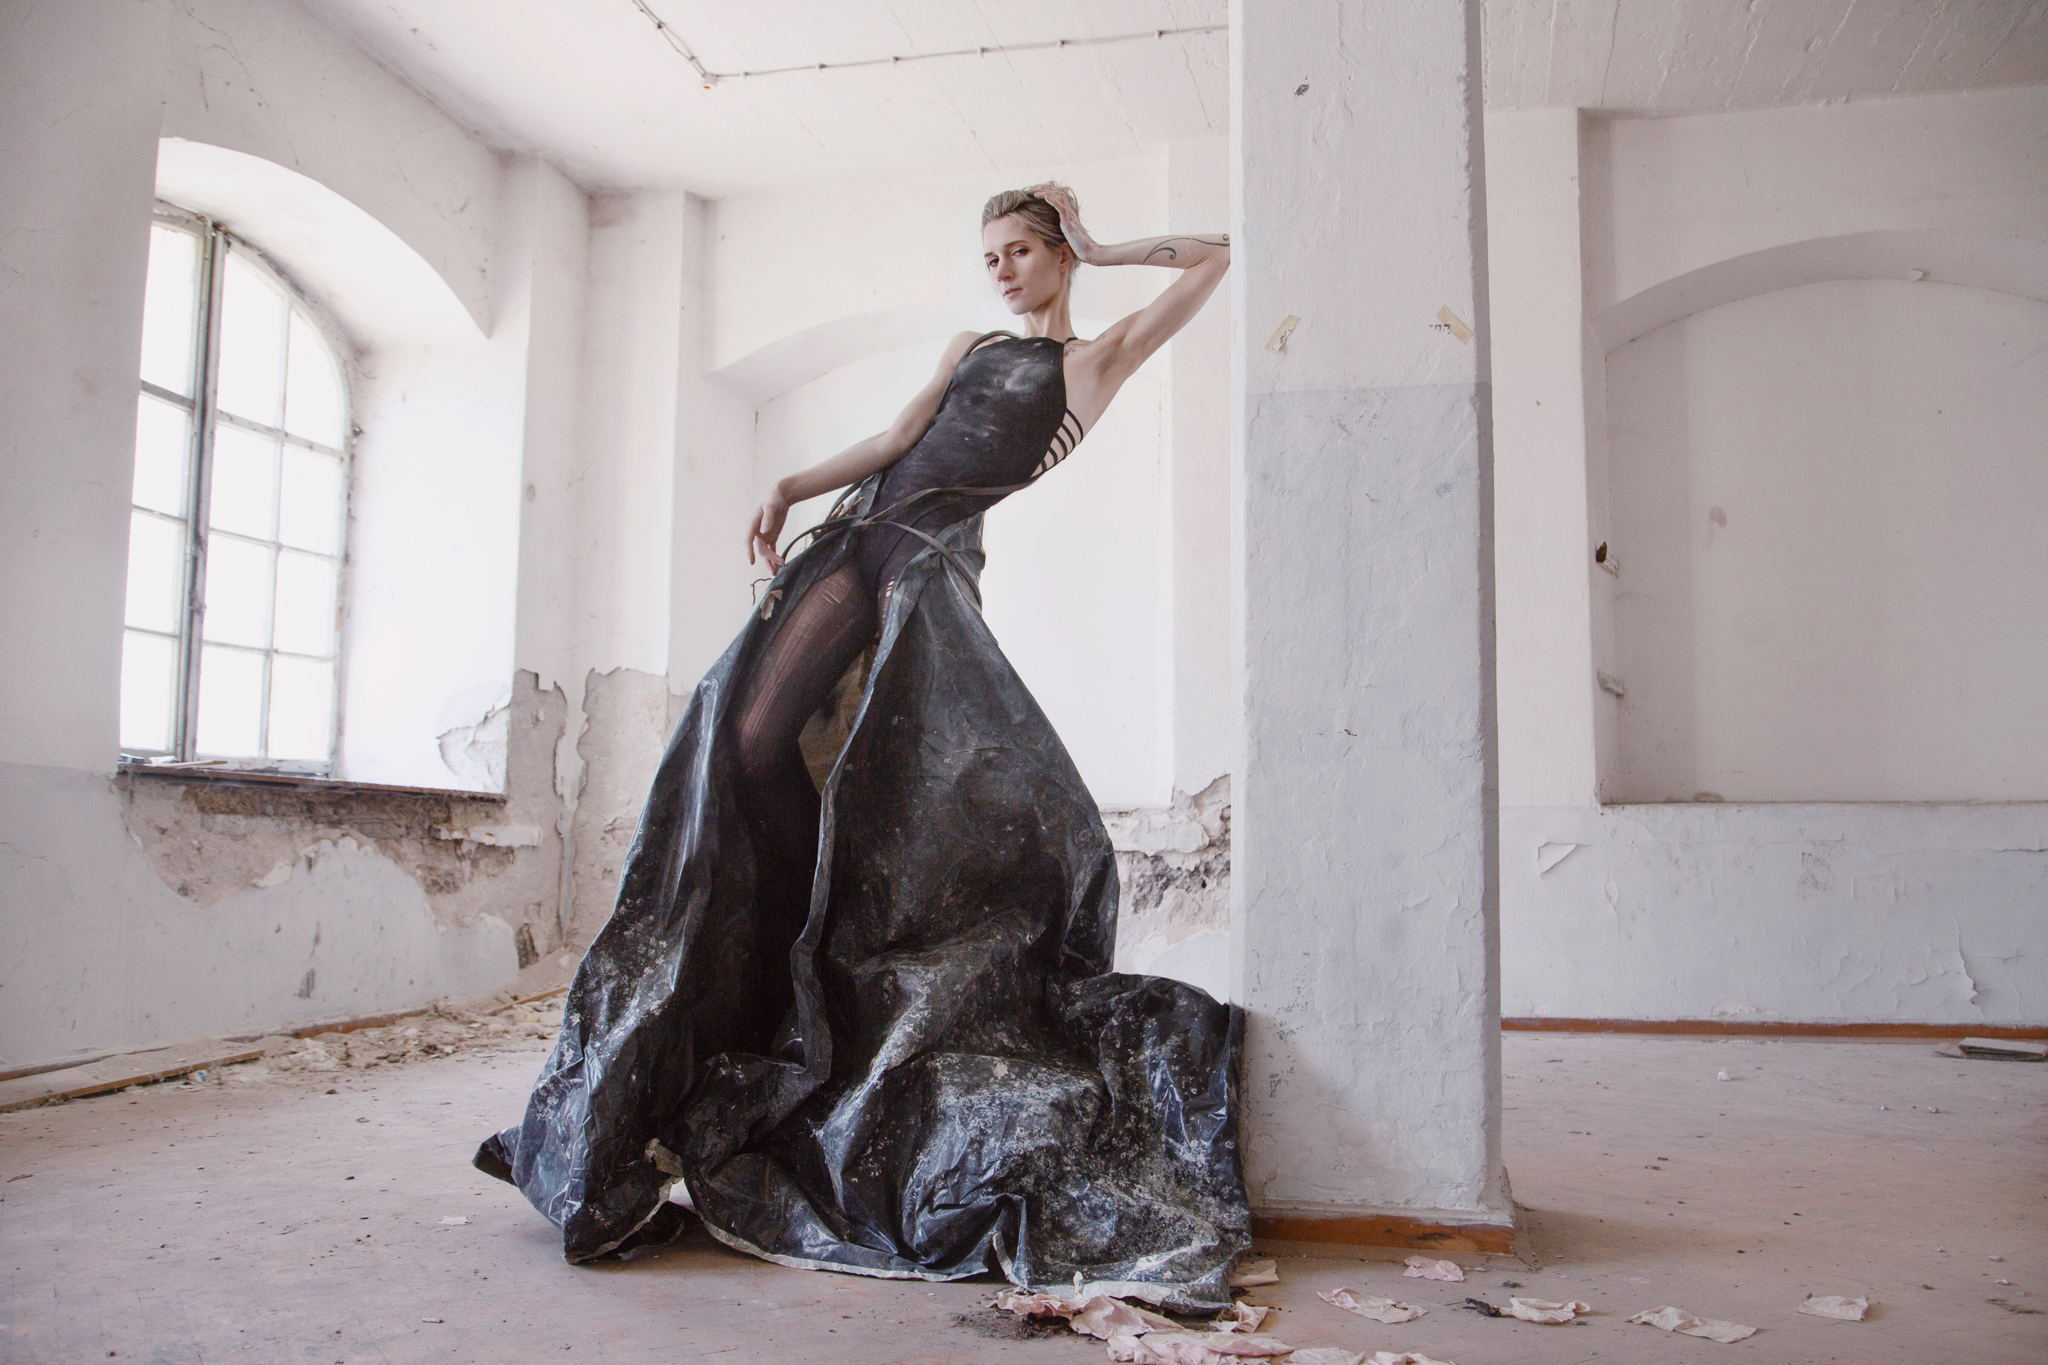 Roxx, shot by Redd, at an abandoned building in Pula, Croatia, wearing a dress constructed from plastic tarp and rope sourced on site.